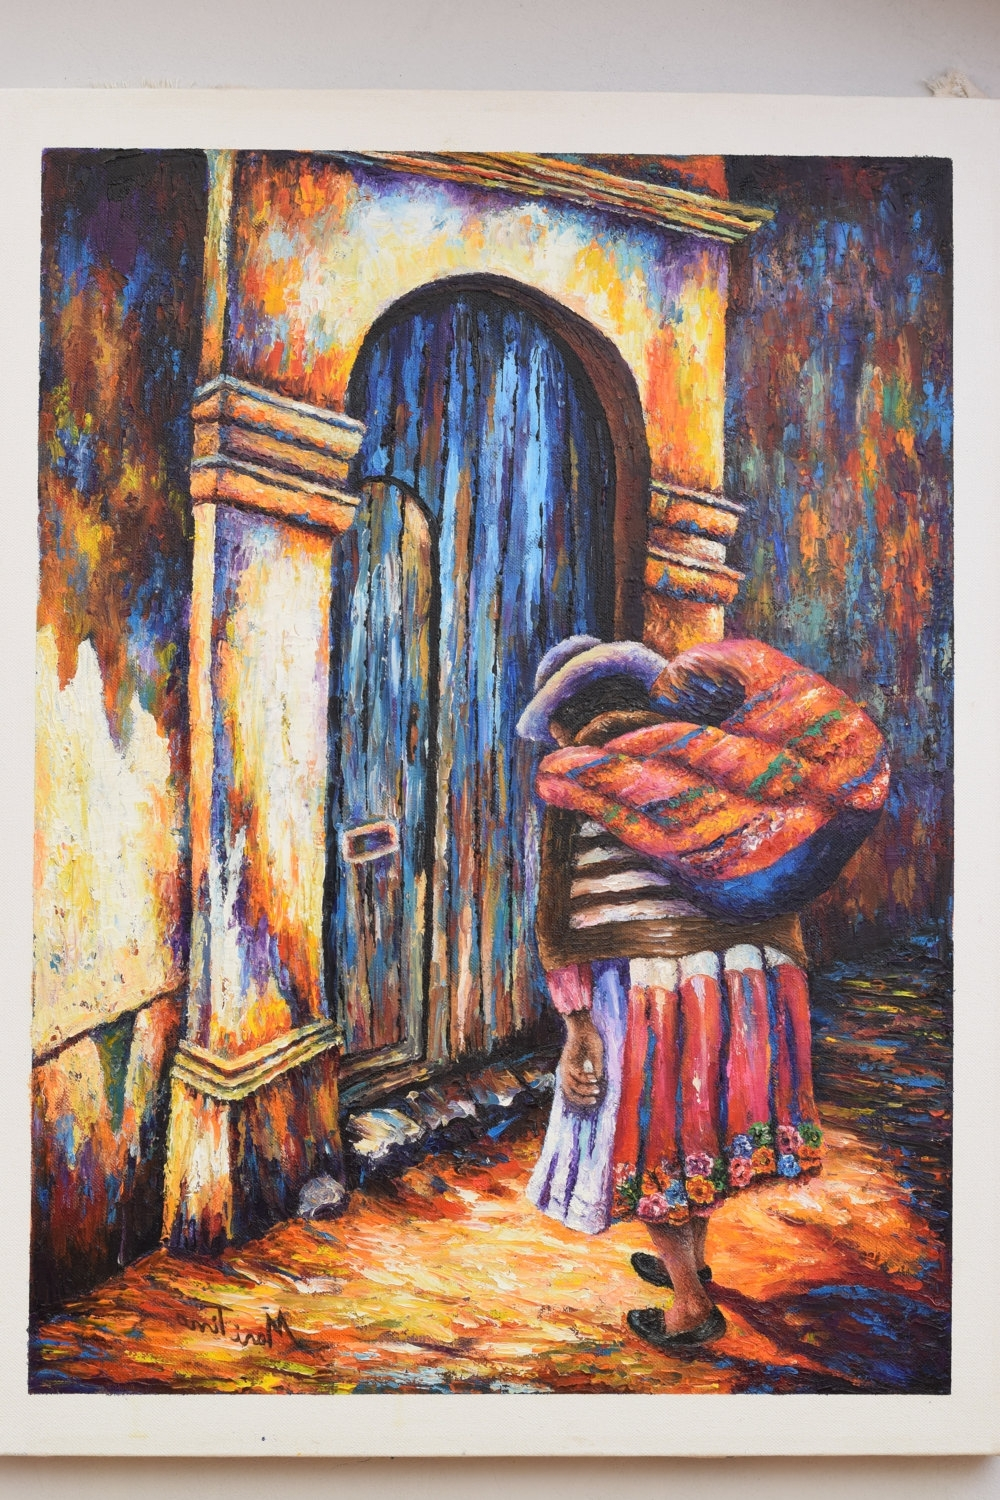 Most Popular Home Decor, Wall Decor, Oil Painting, Peruvian Art De Tinoart En Intended For Peruvian Wall Art (View 5 of 15)